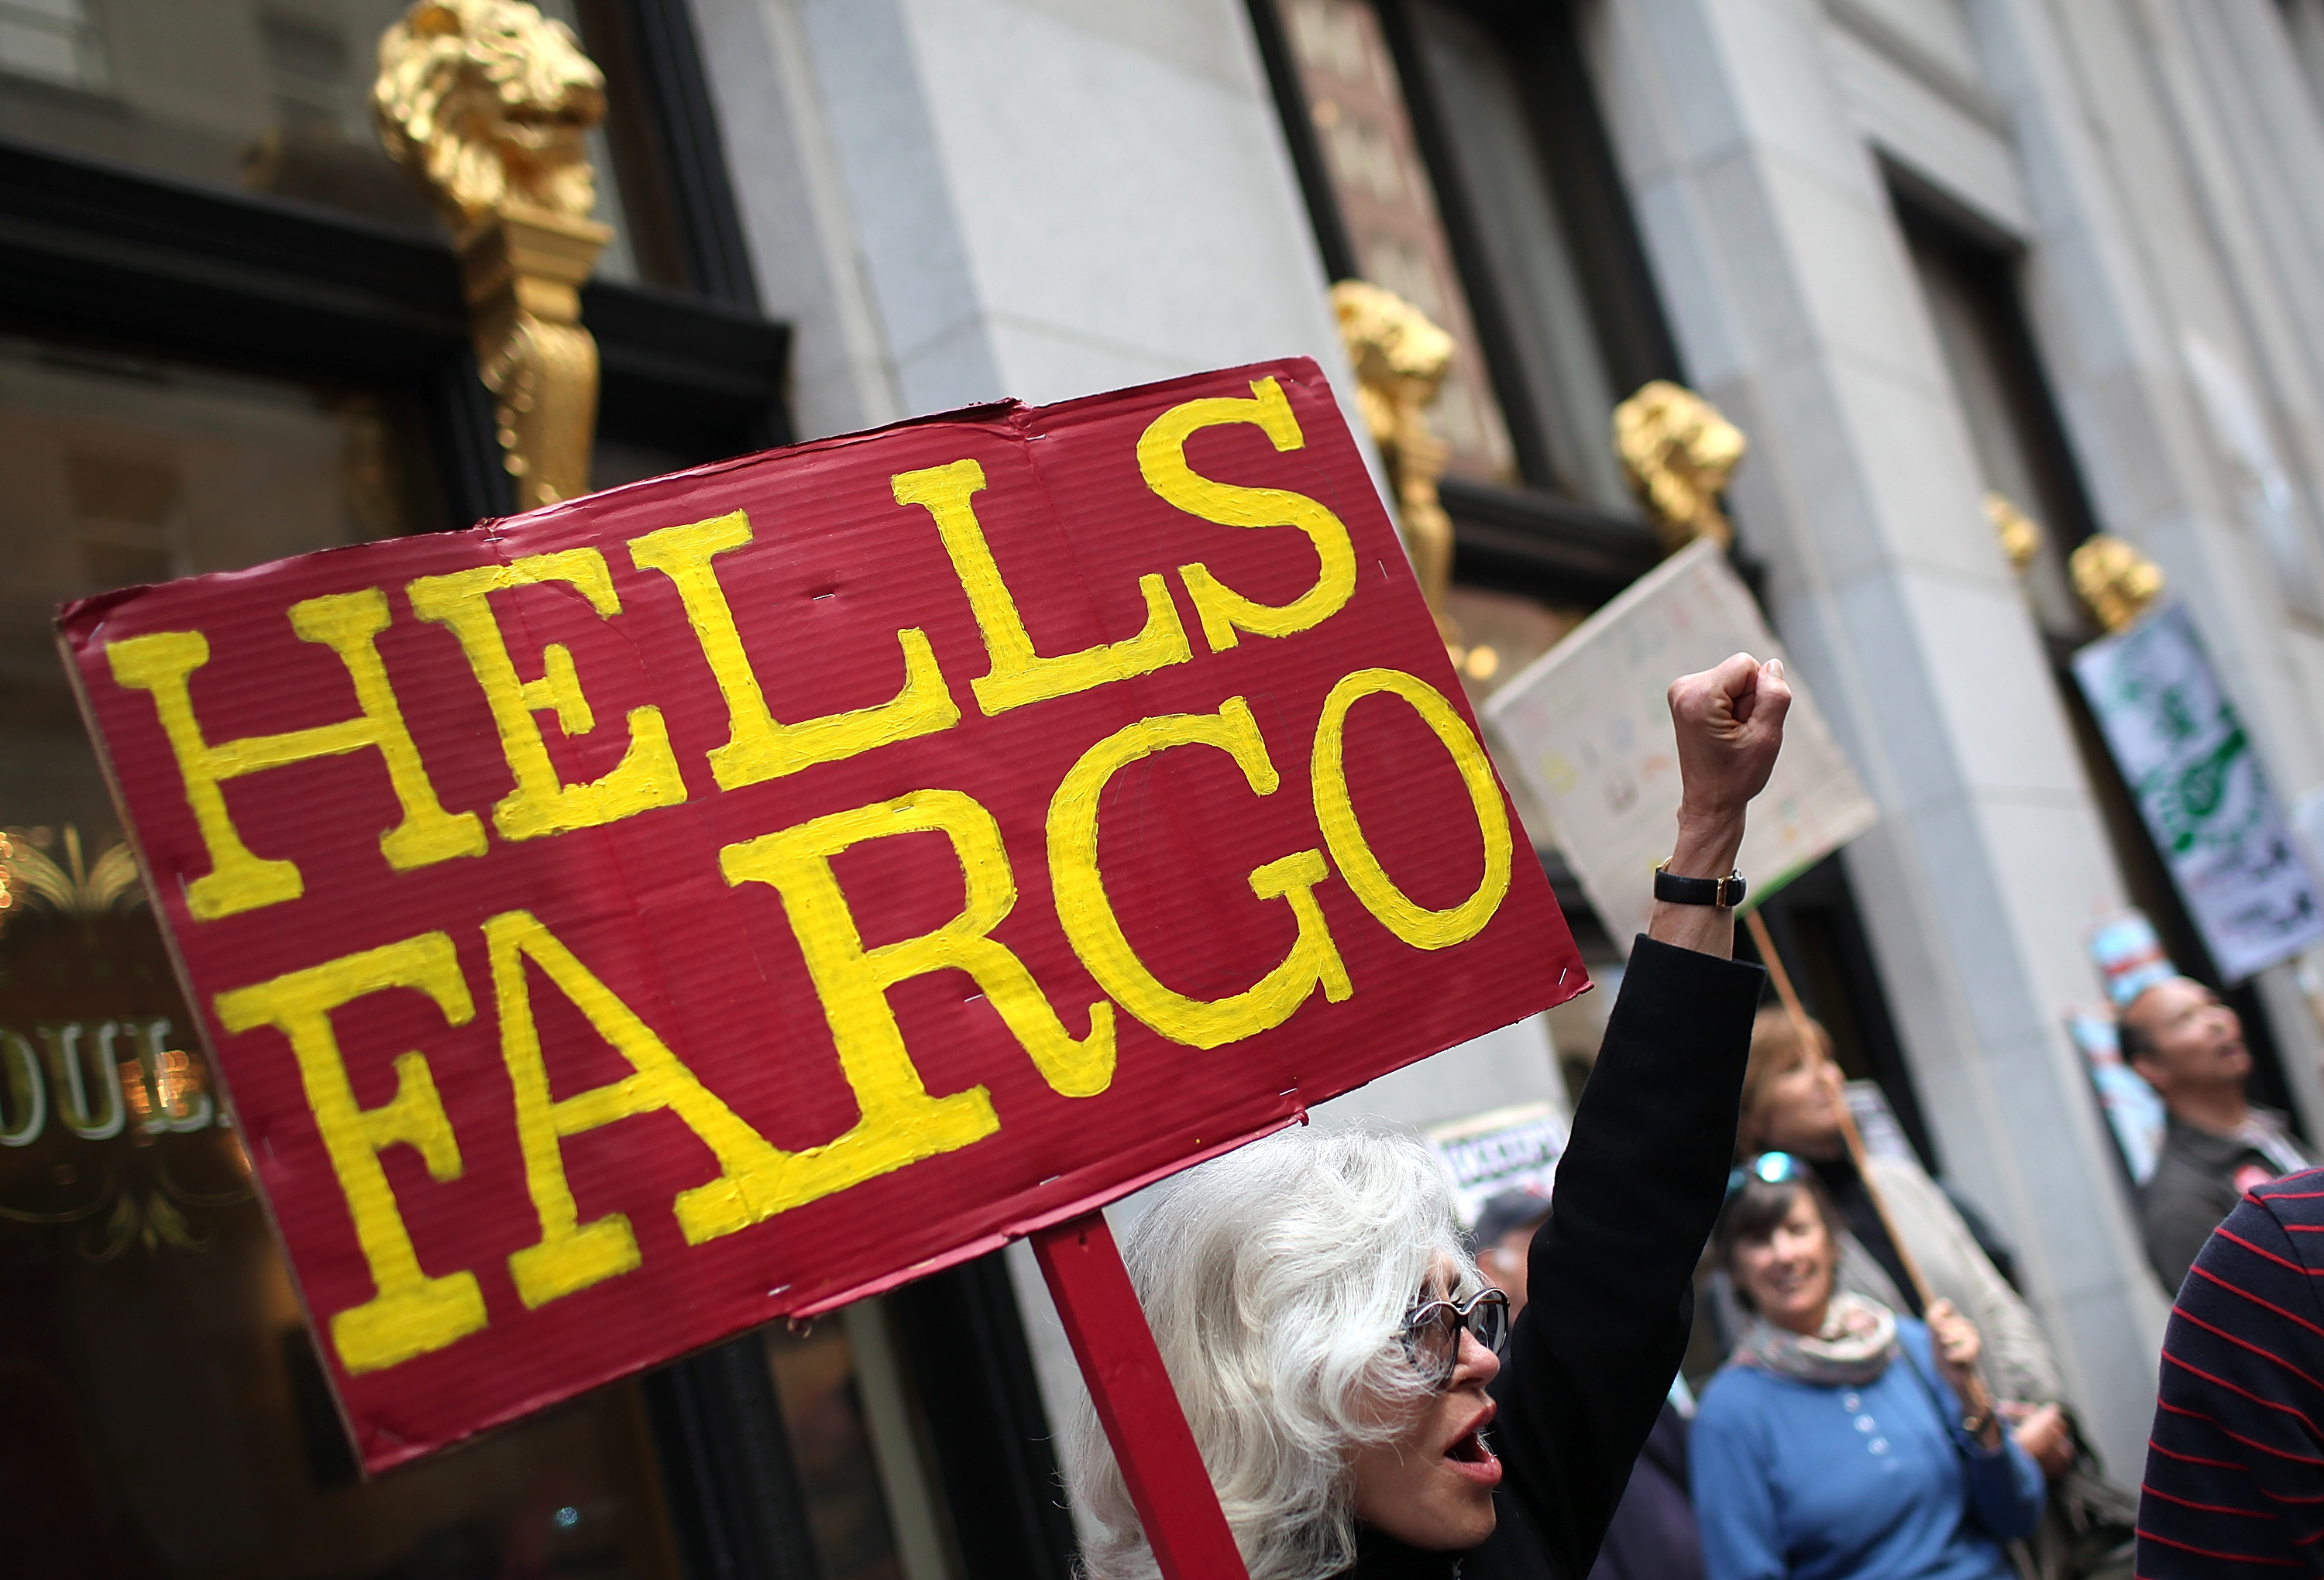 Activists Rally At Wells Fargo Shareholders Meeting In San Francisco